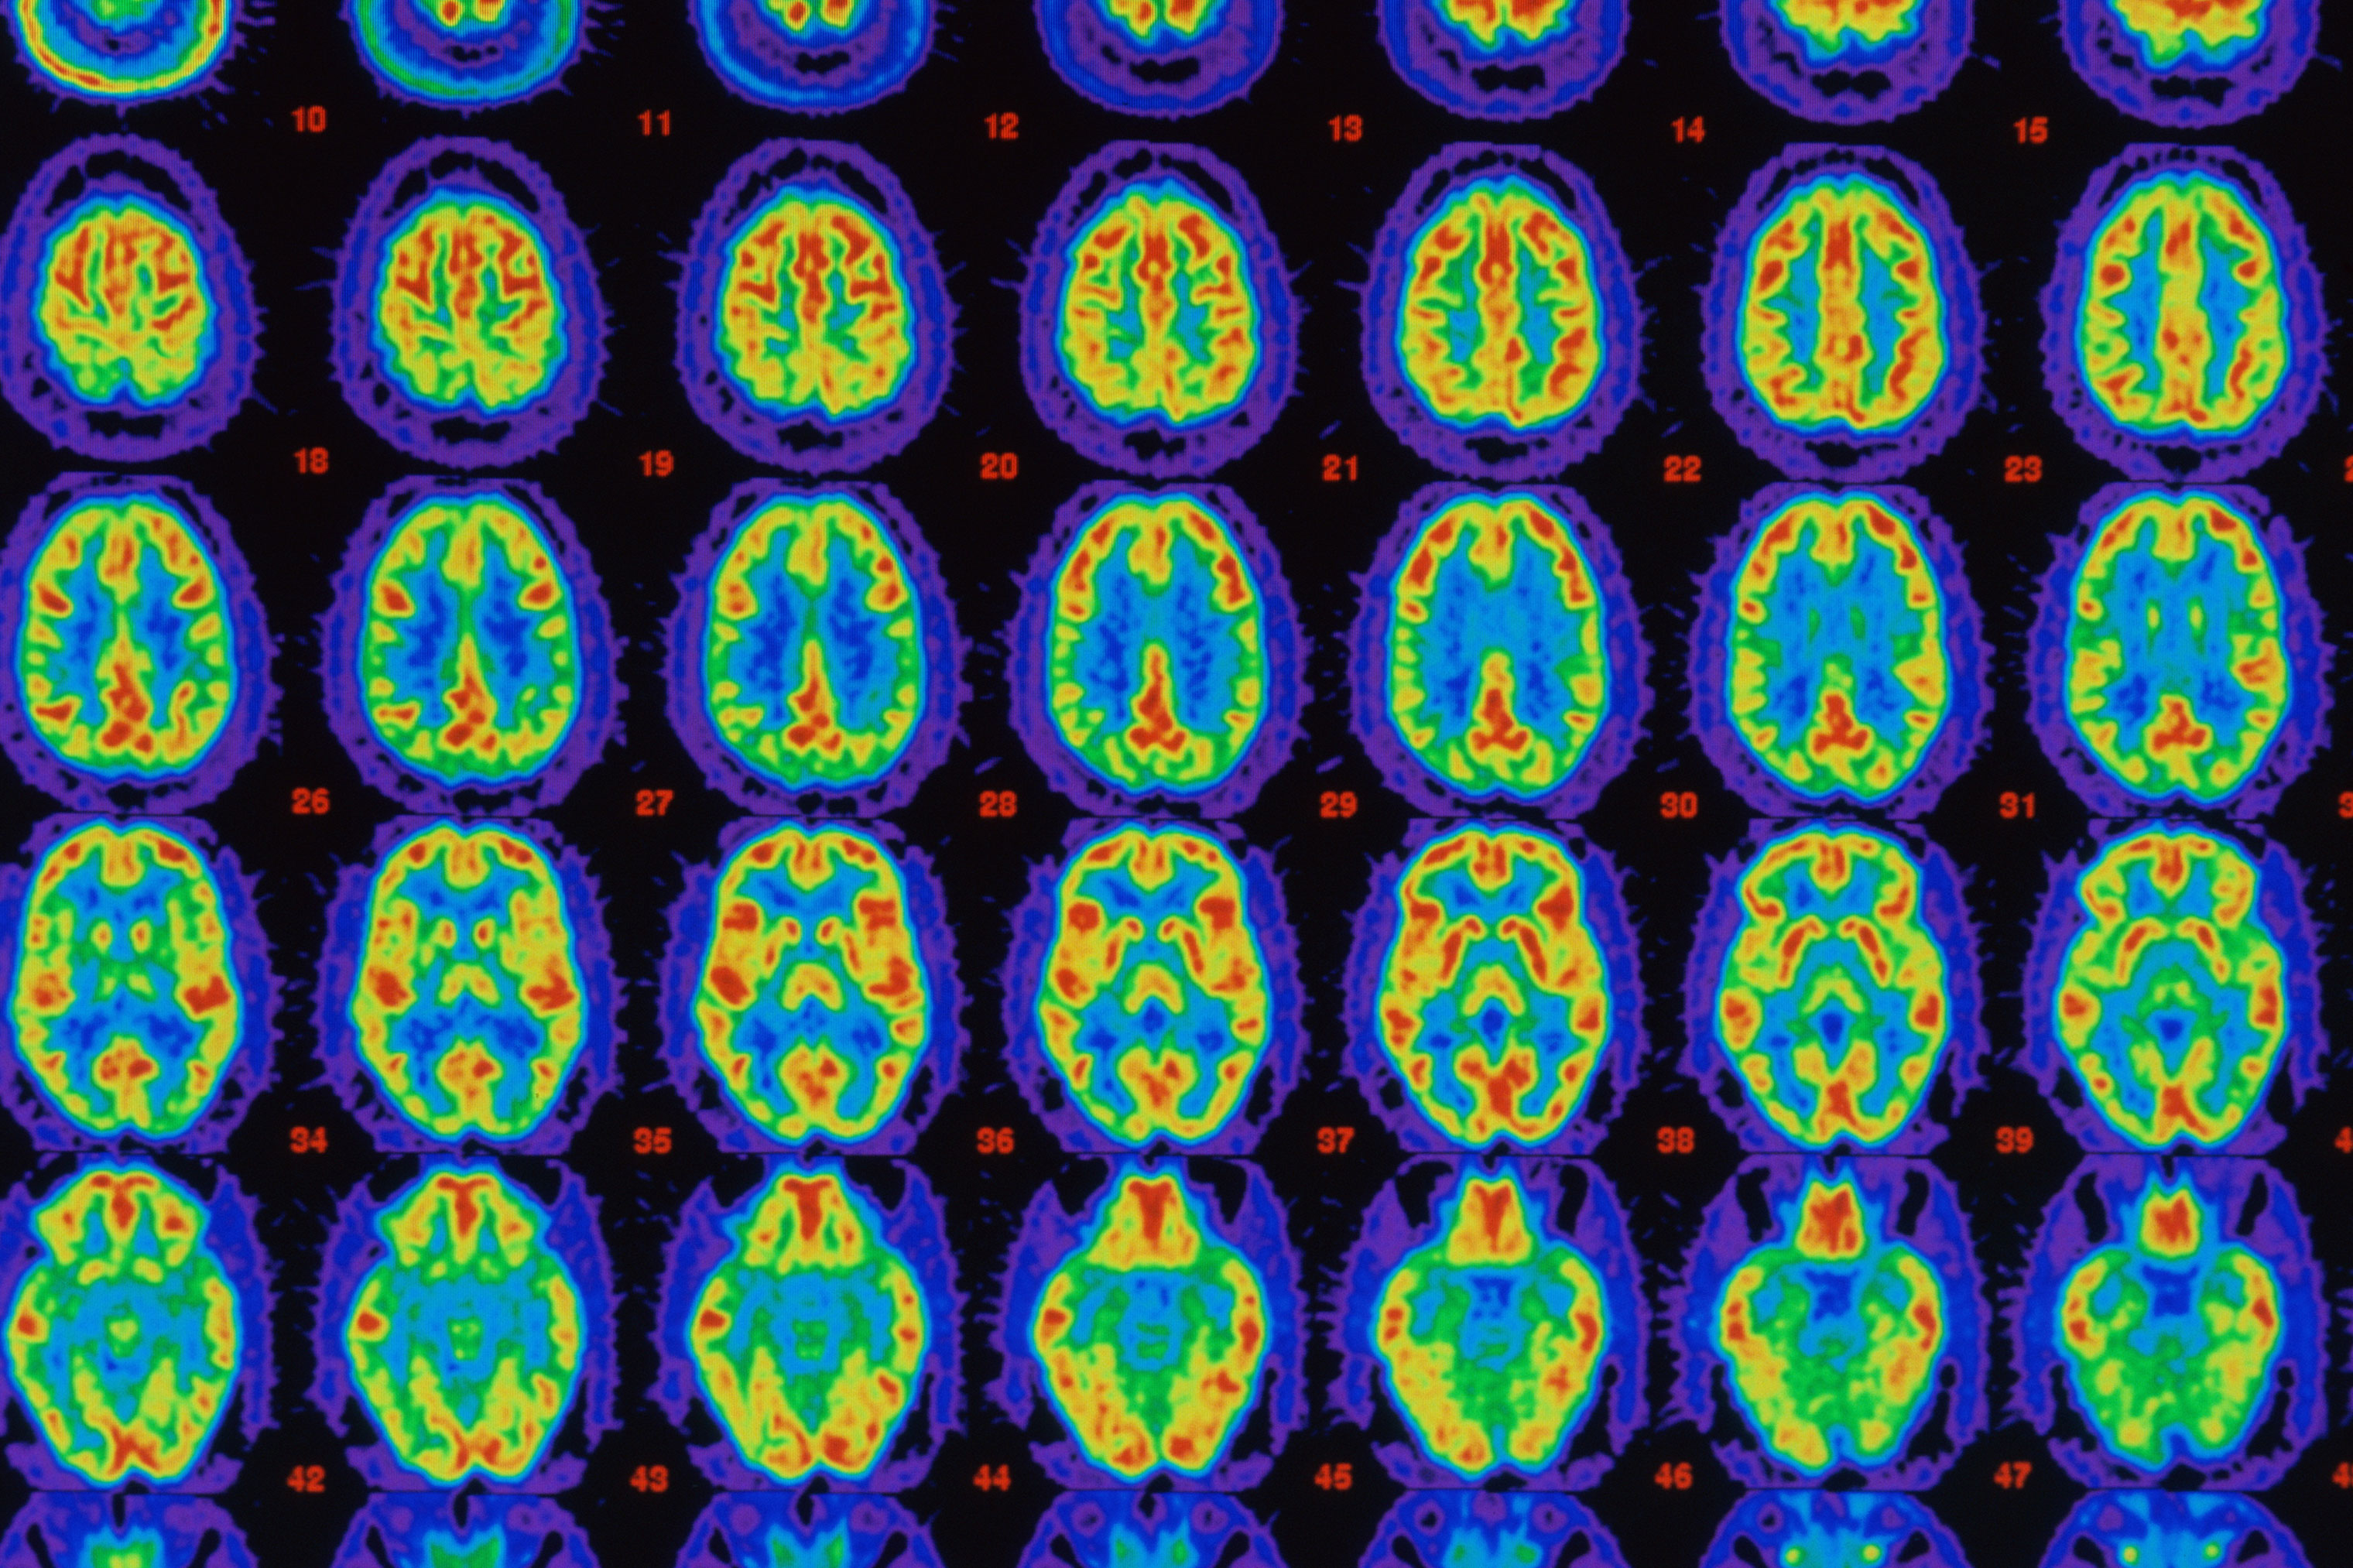 Positron Emission Tomography (PET) is used in the diagnosis and treatment of brain diseases.